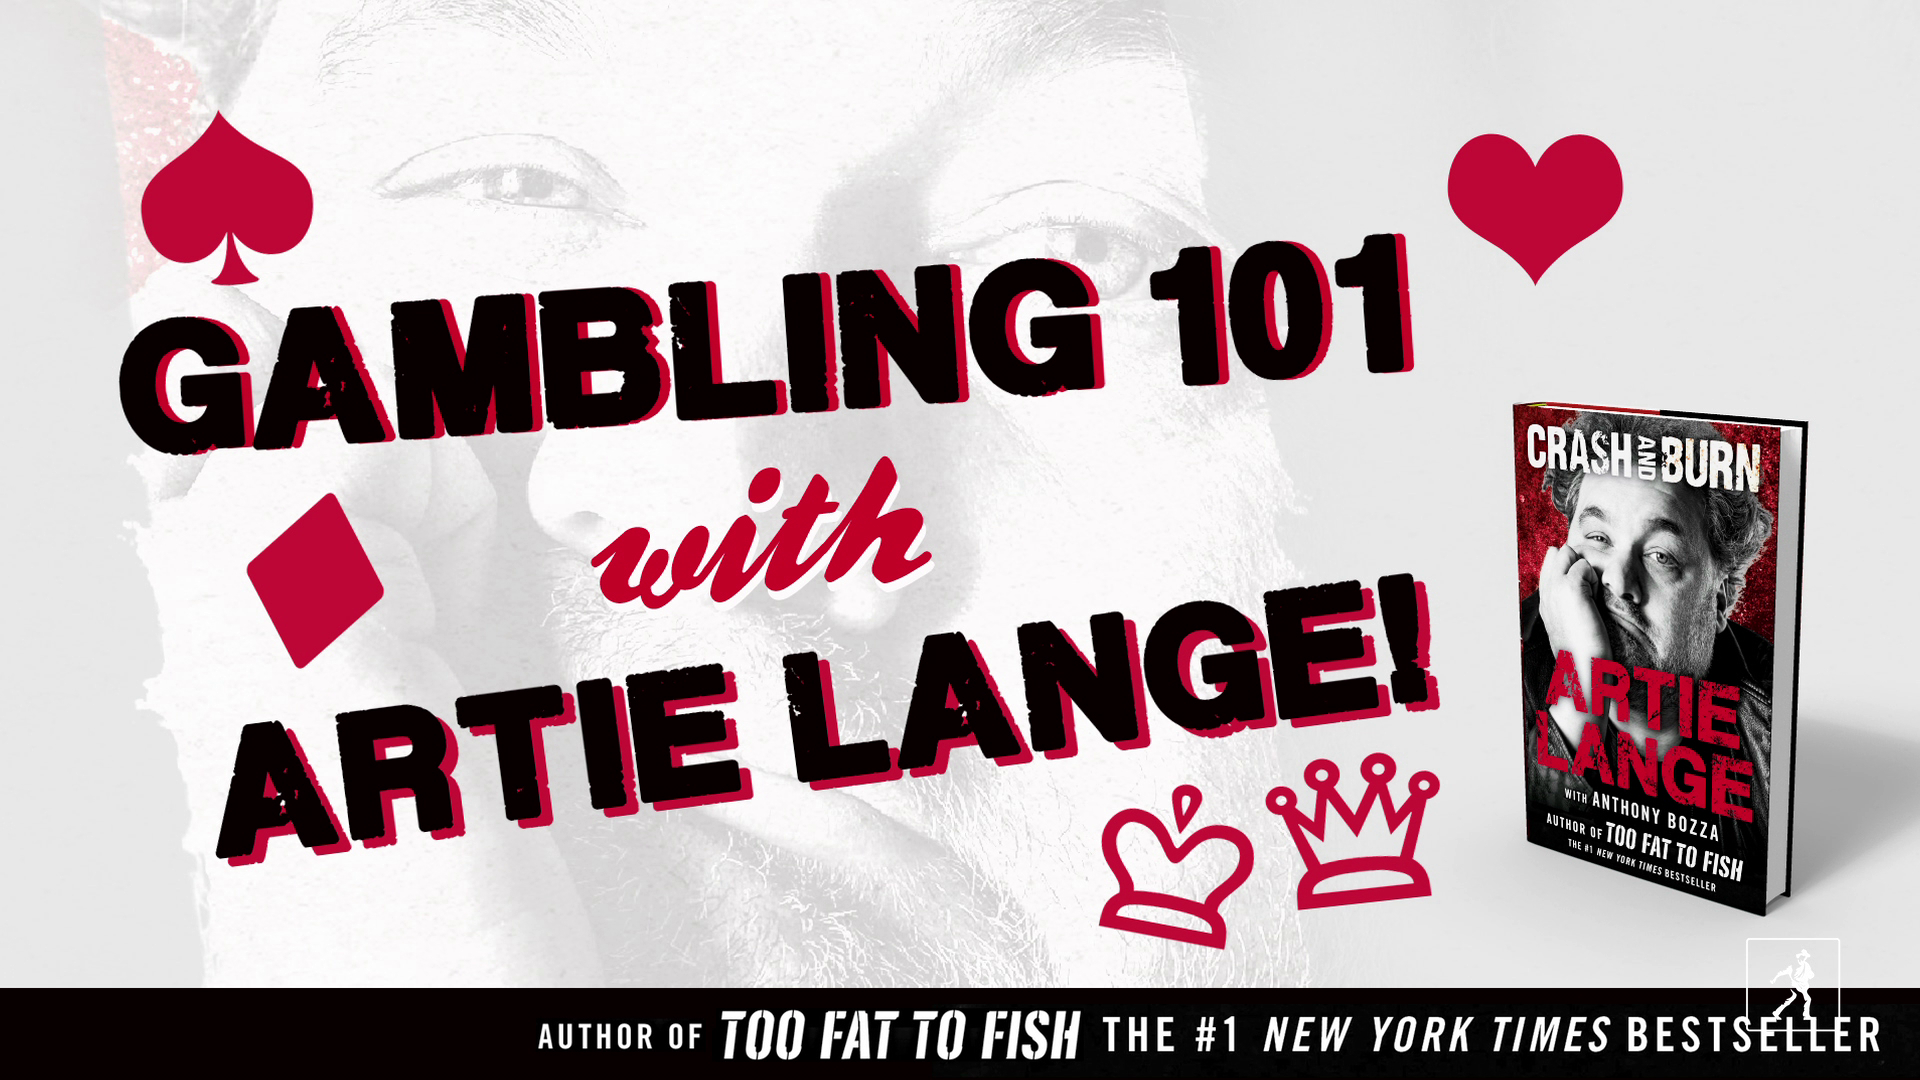 Gambling 101 with Artie Lange